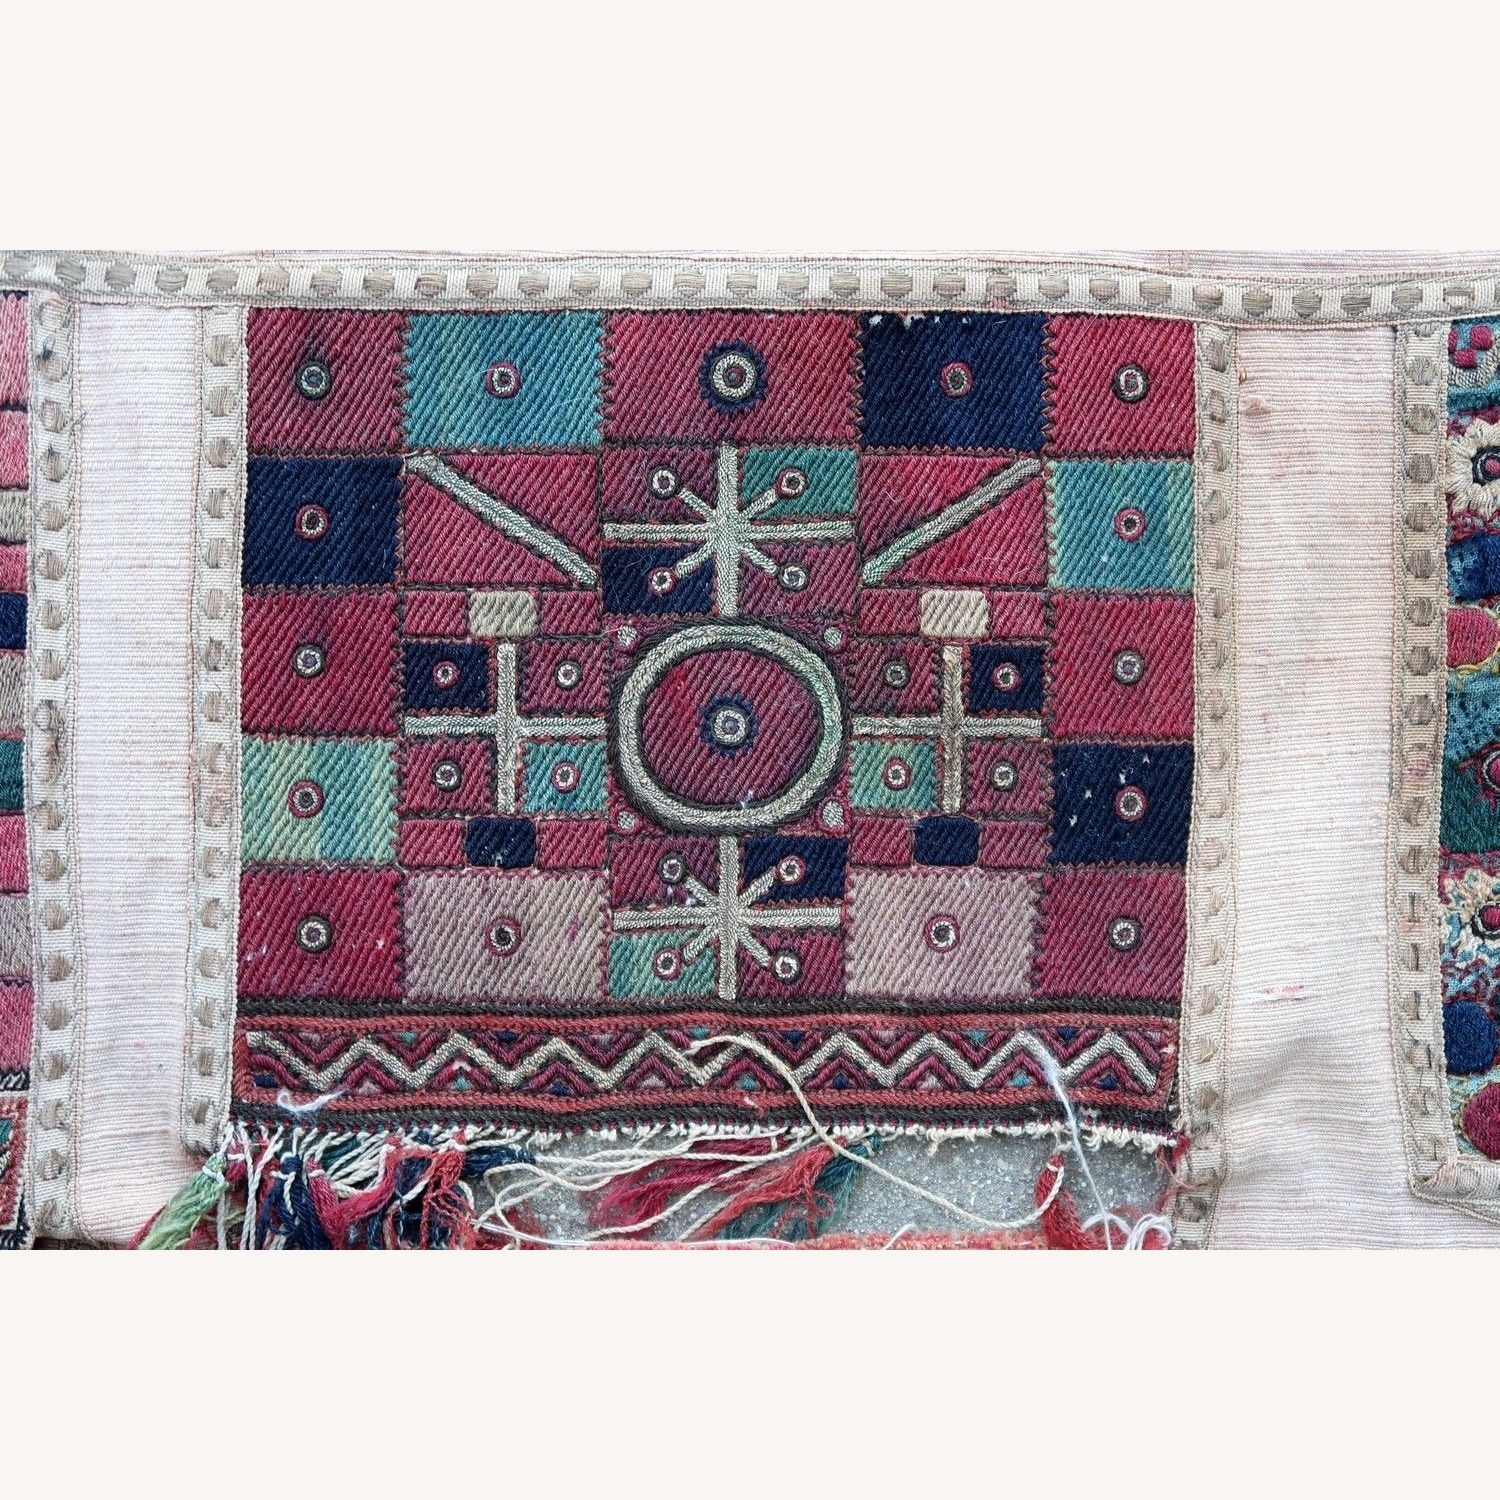 Handmade antique Greek embroidery, 1P87 - image-4